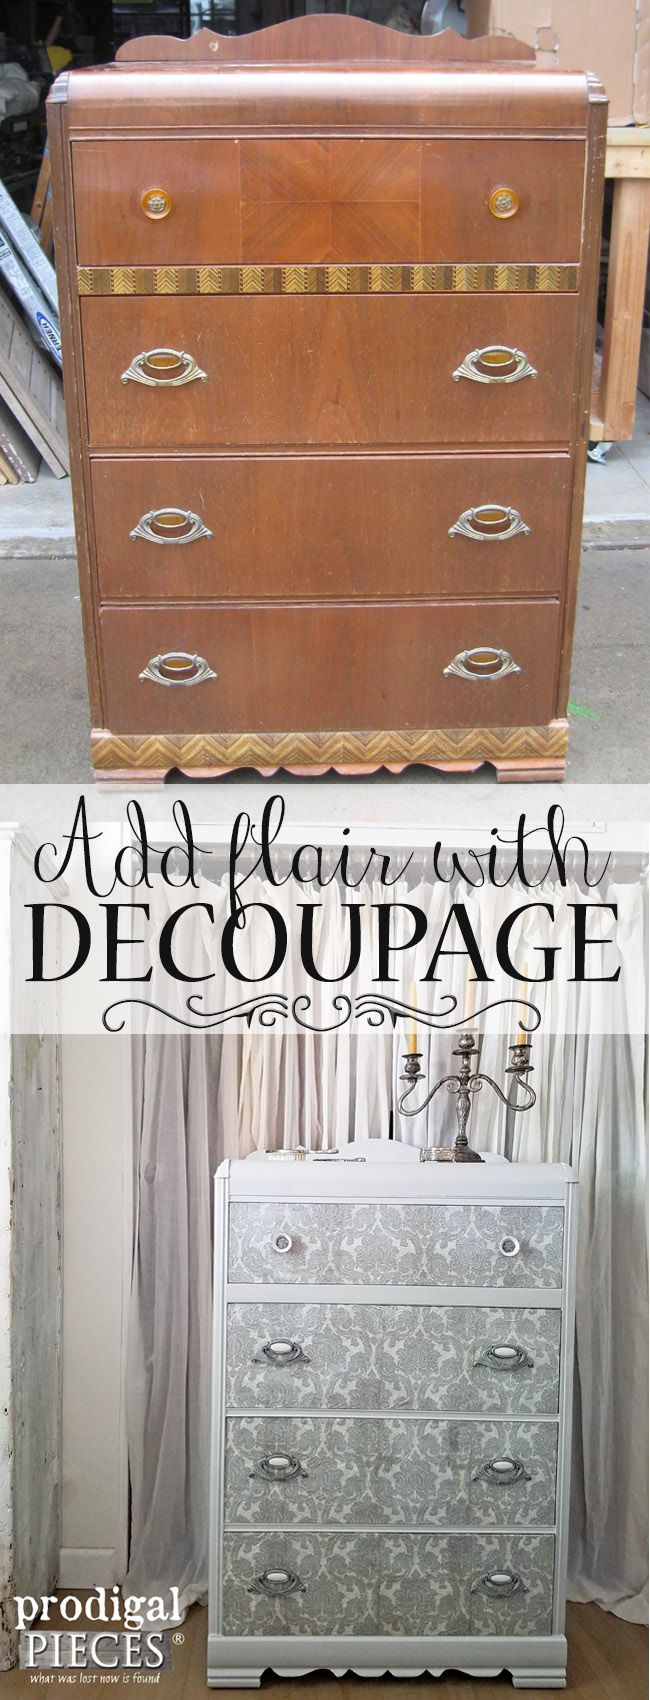 decoupage ideas for furniture. add flair to your furniture with decoupage diy tutorial by prodigal pieces http ideas for g